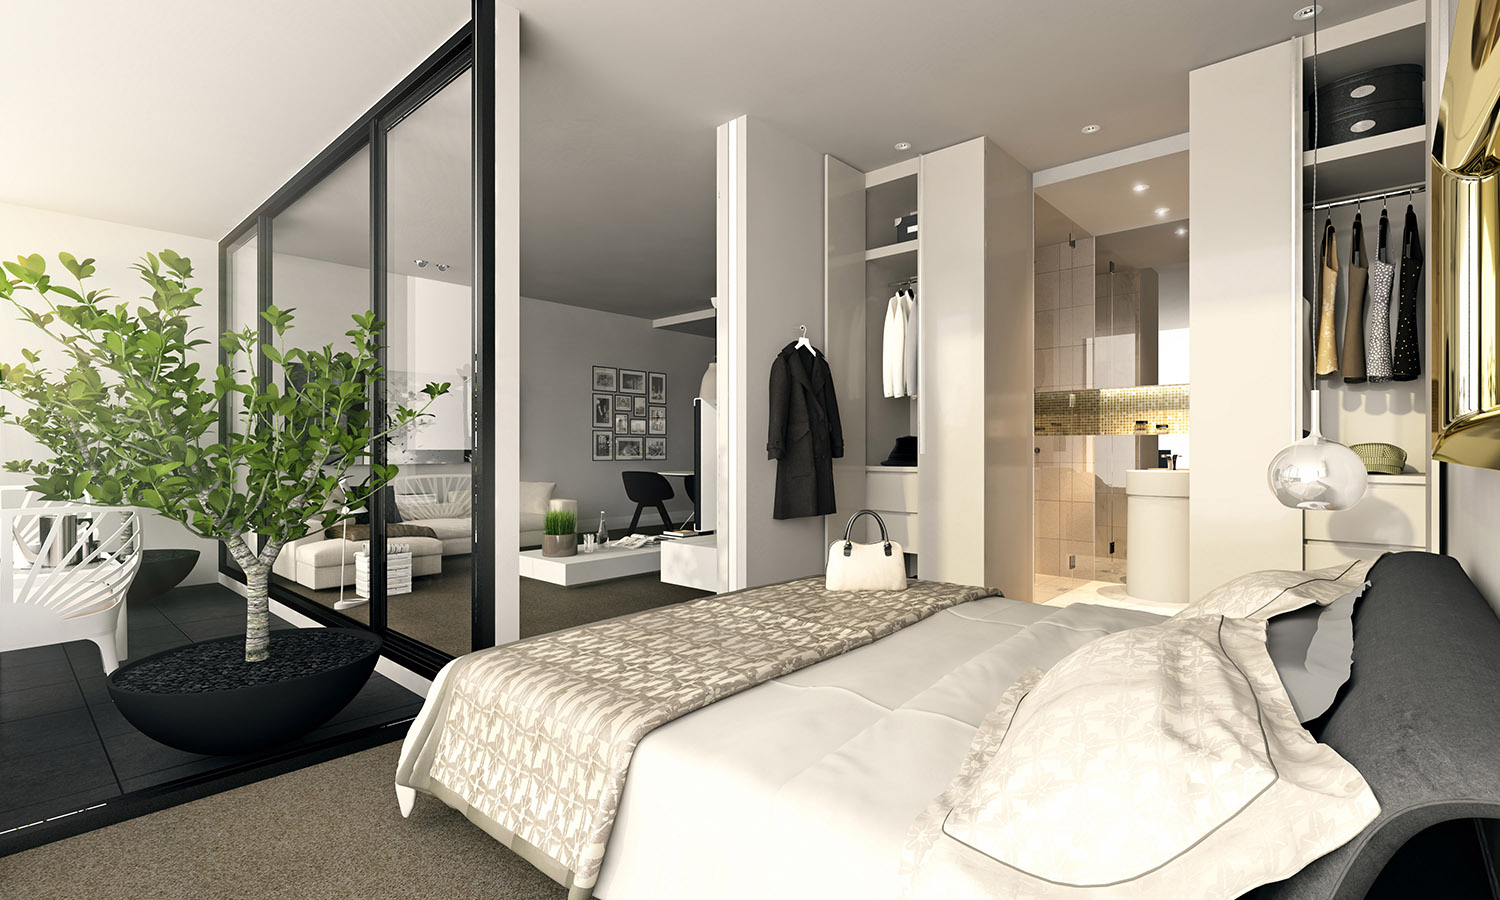 Studio apartment interiors inspiration for Modern studio apartment ideas